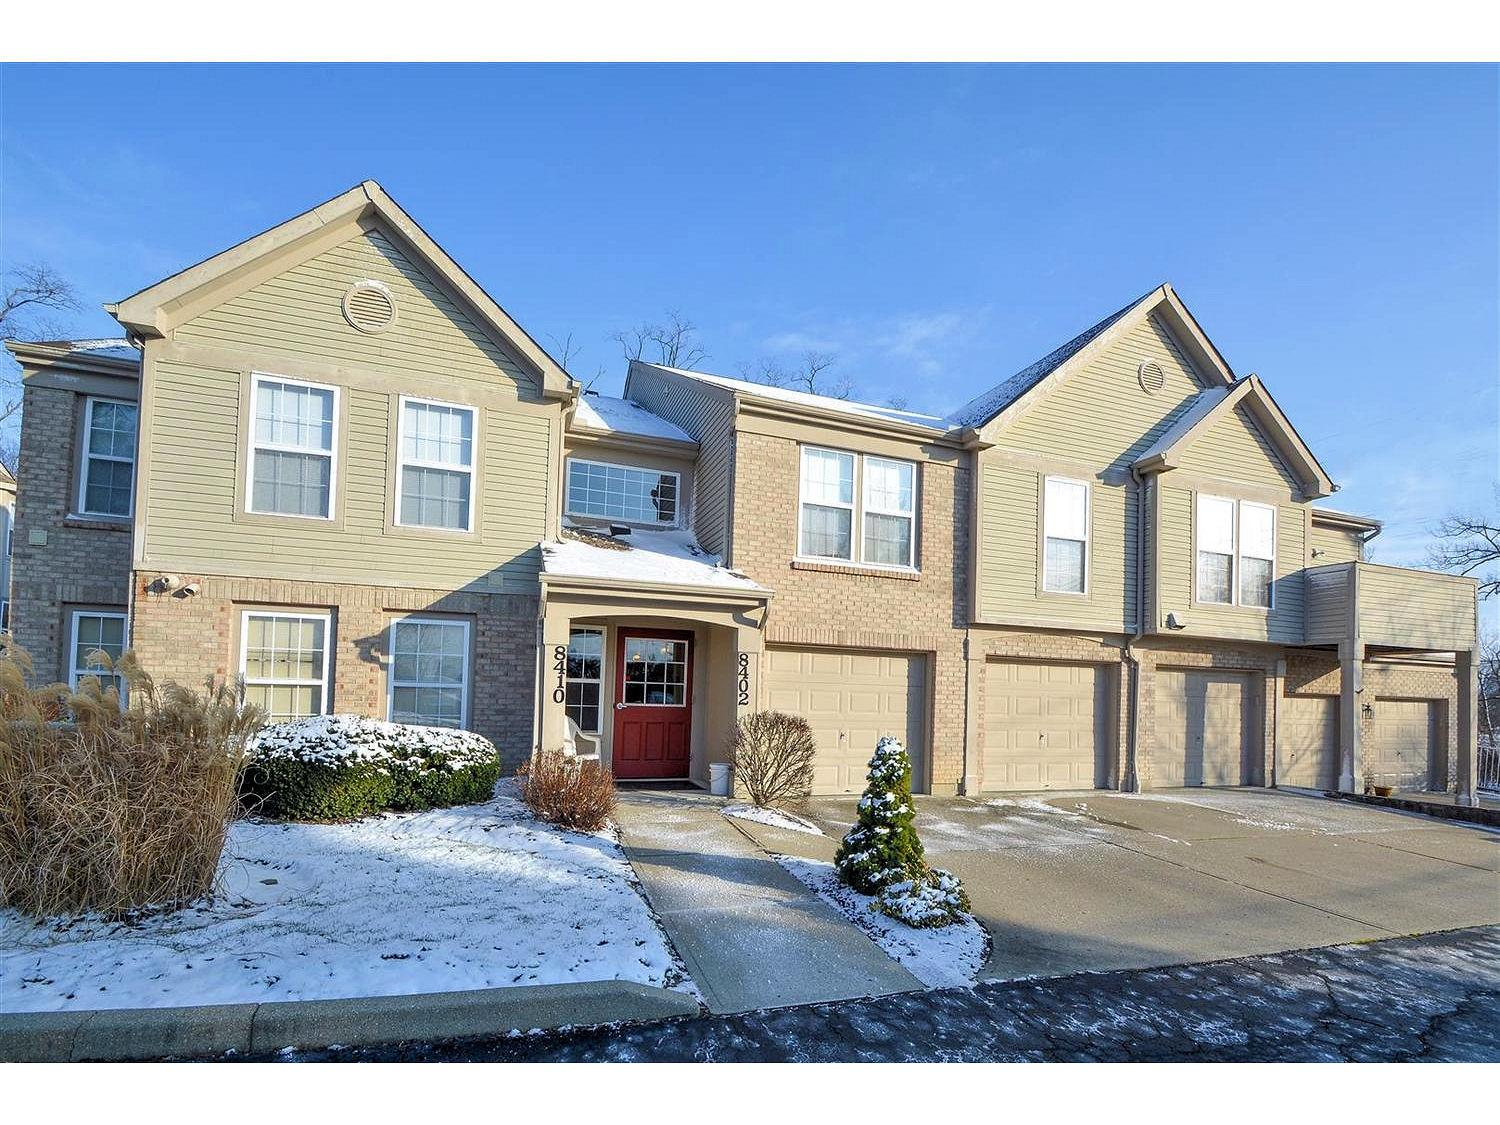 8402 Ridge Pointe Court, Reading, OH 45237